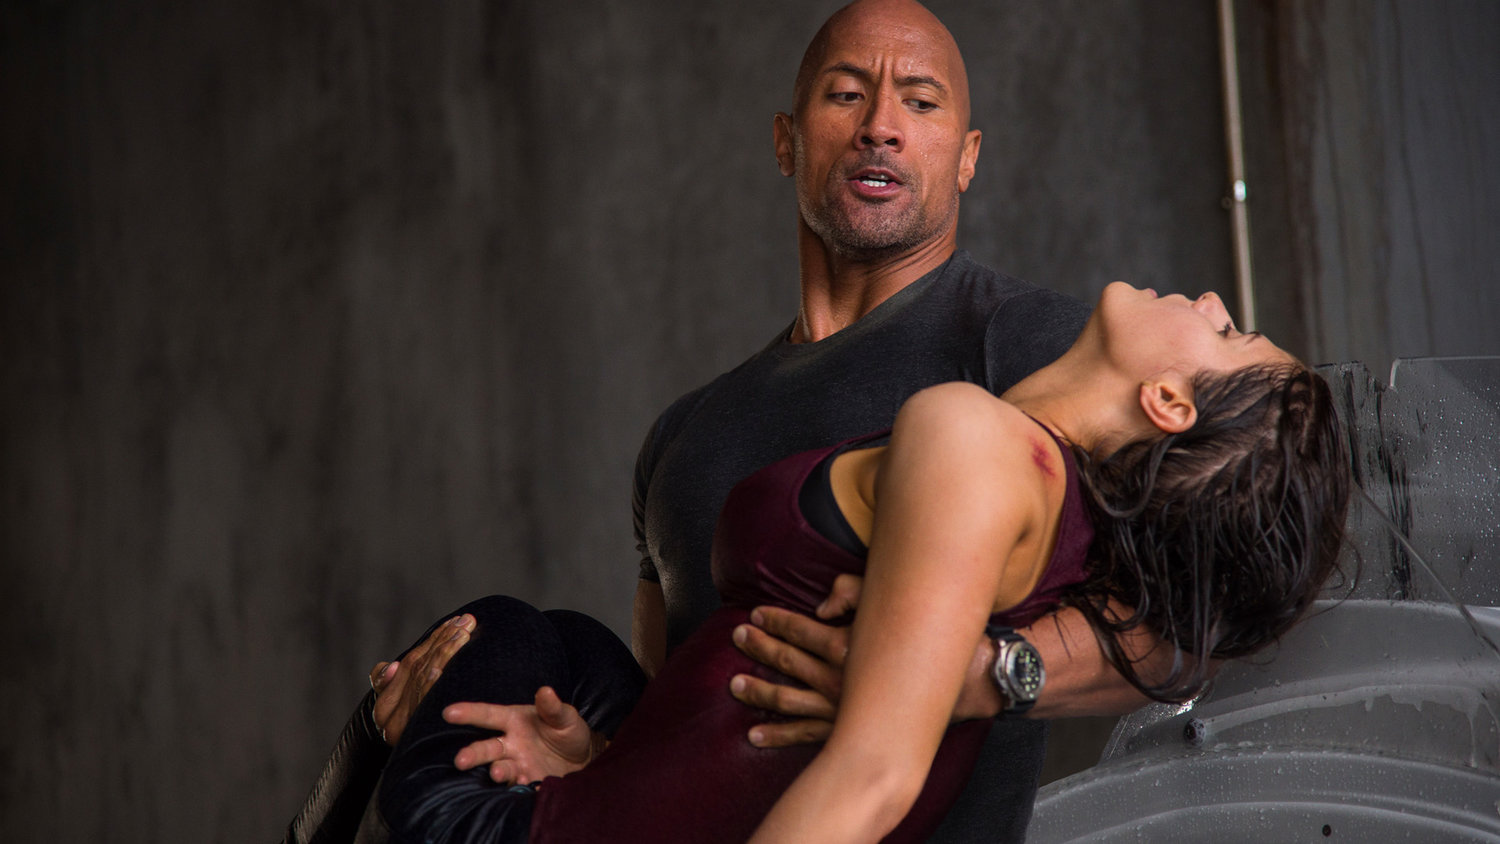 The Rock Will Play a Disabled War Veteran in His New Action Movie SKYSCRAPER, Which Now Has a Release Date